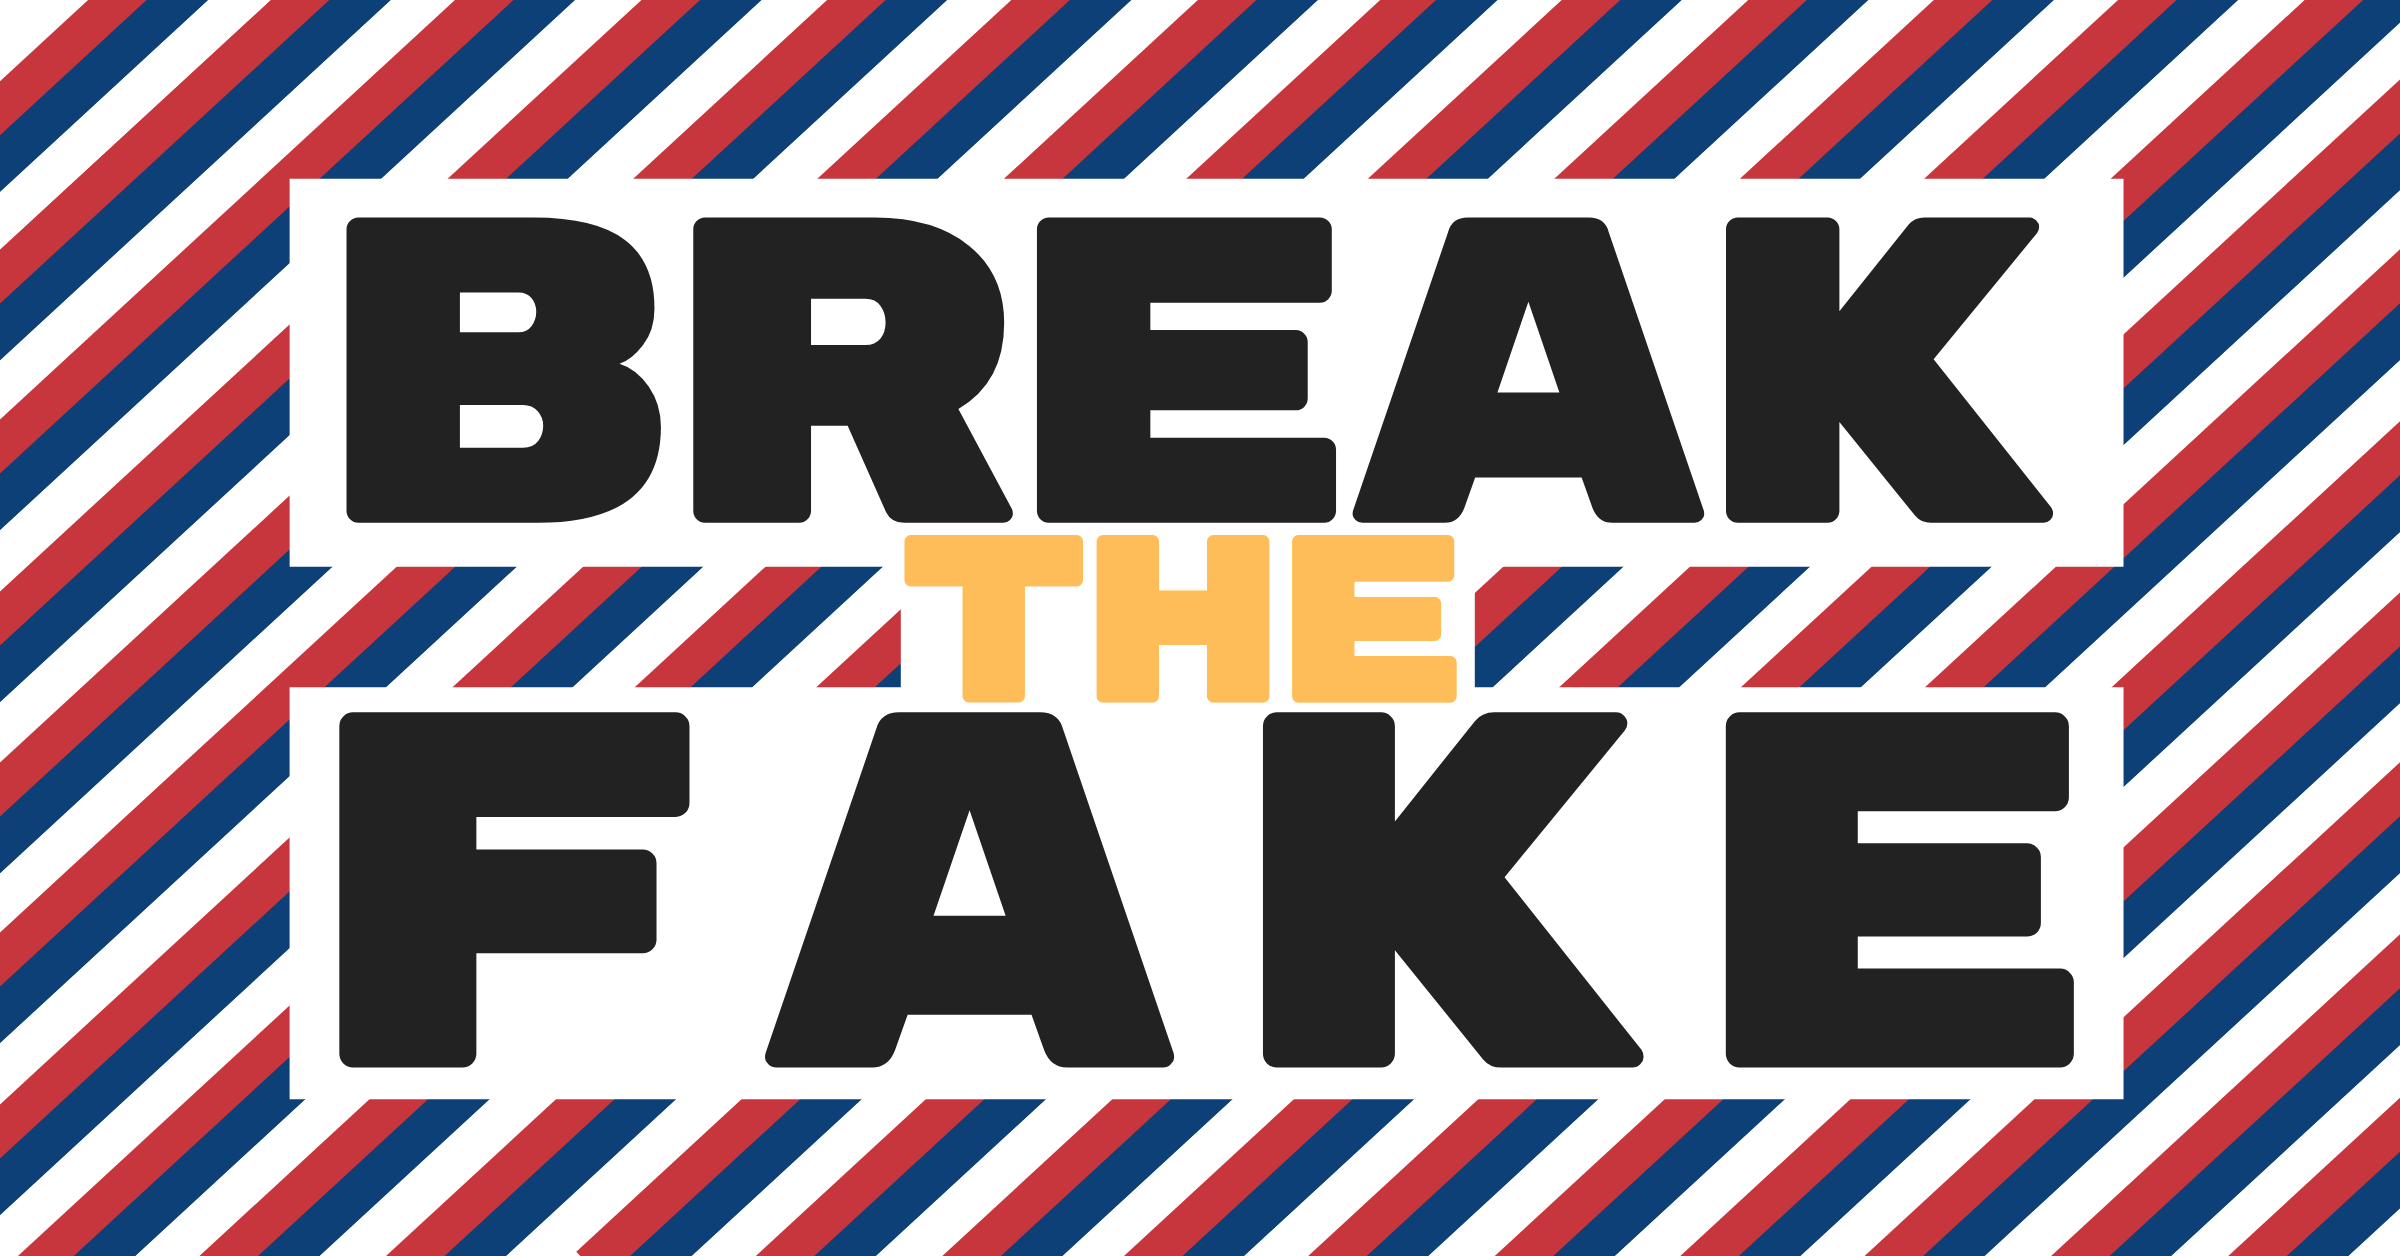 Break The Fake